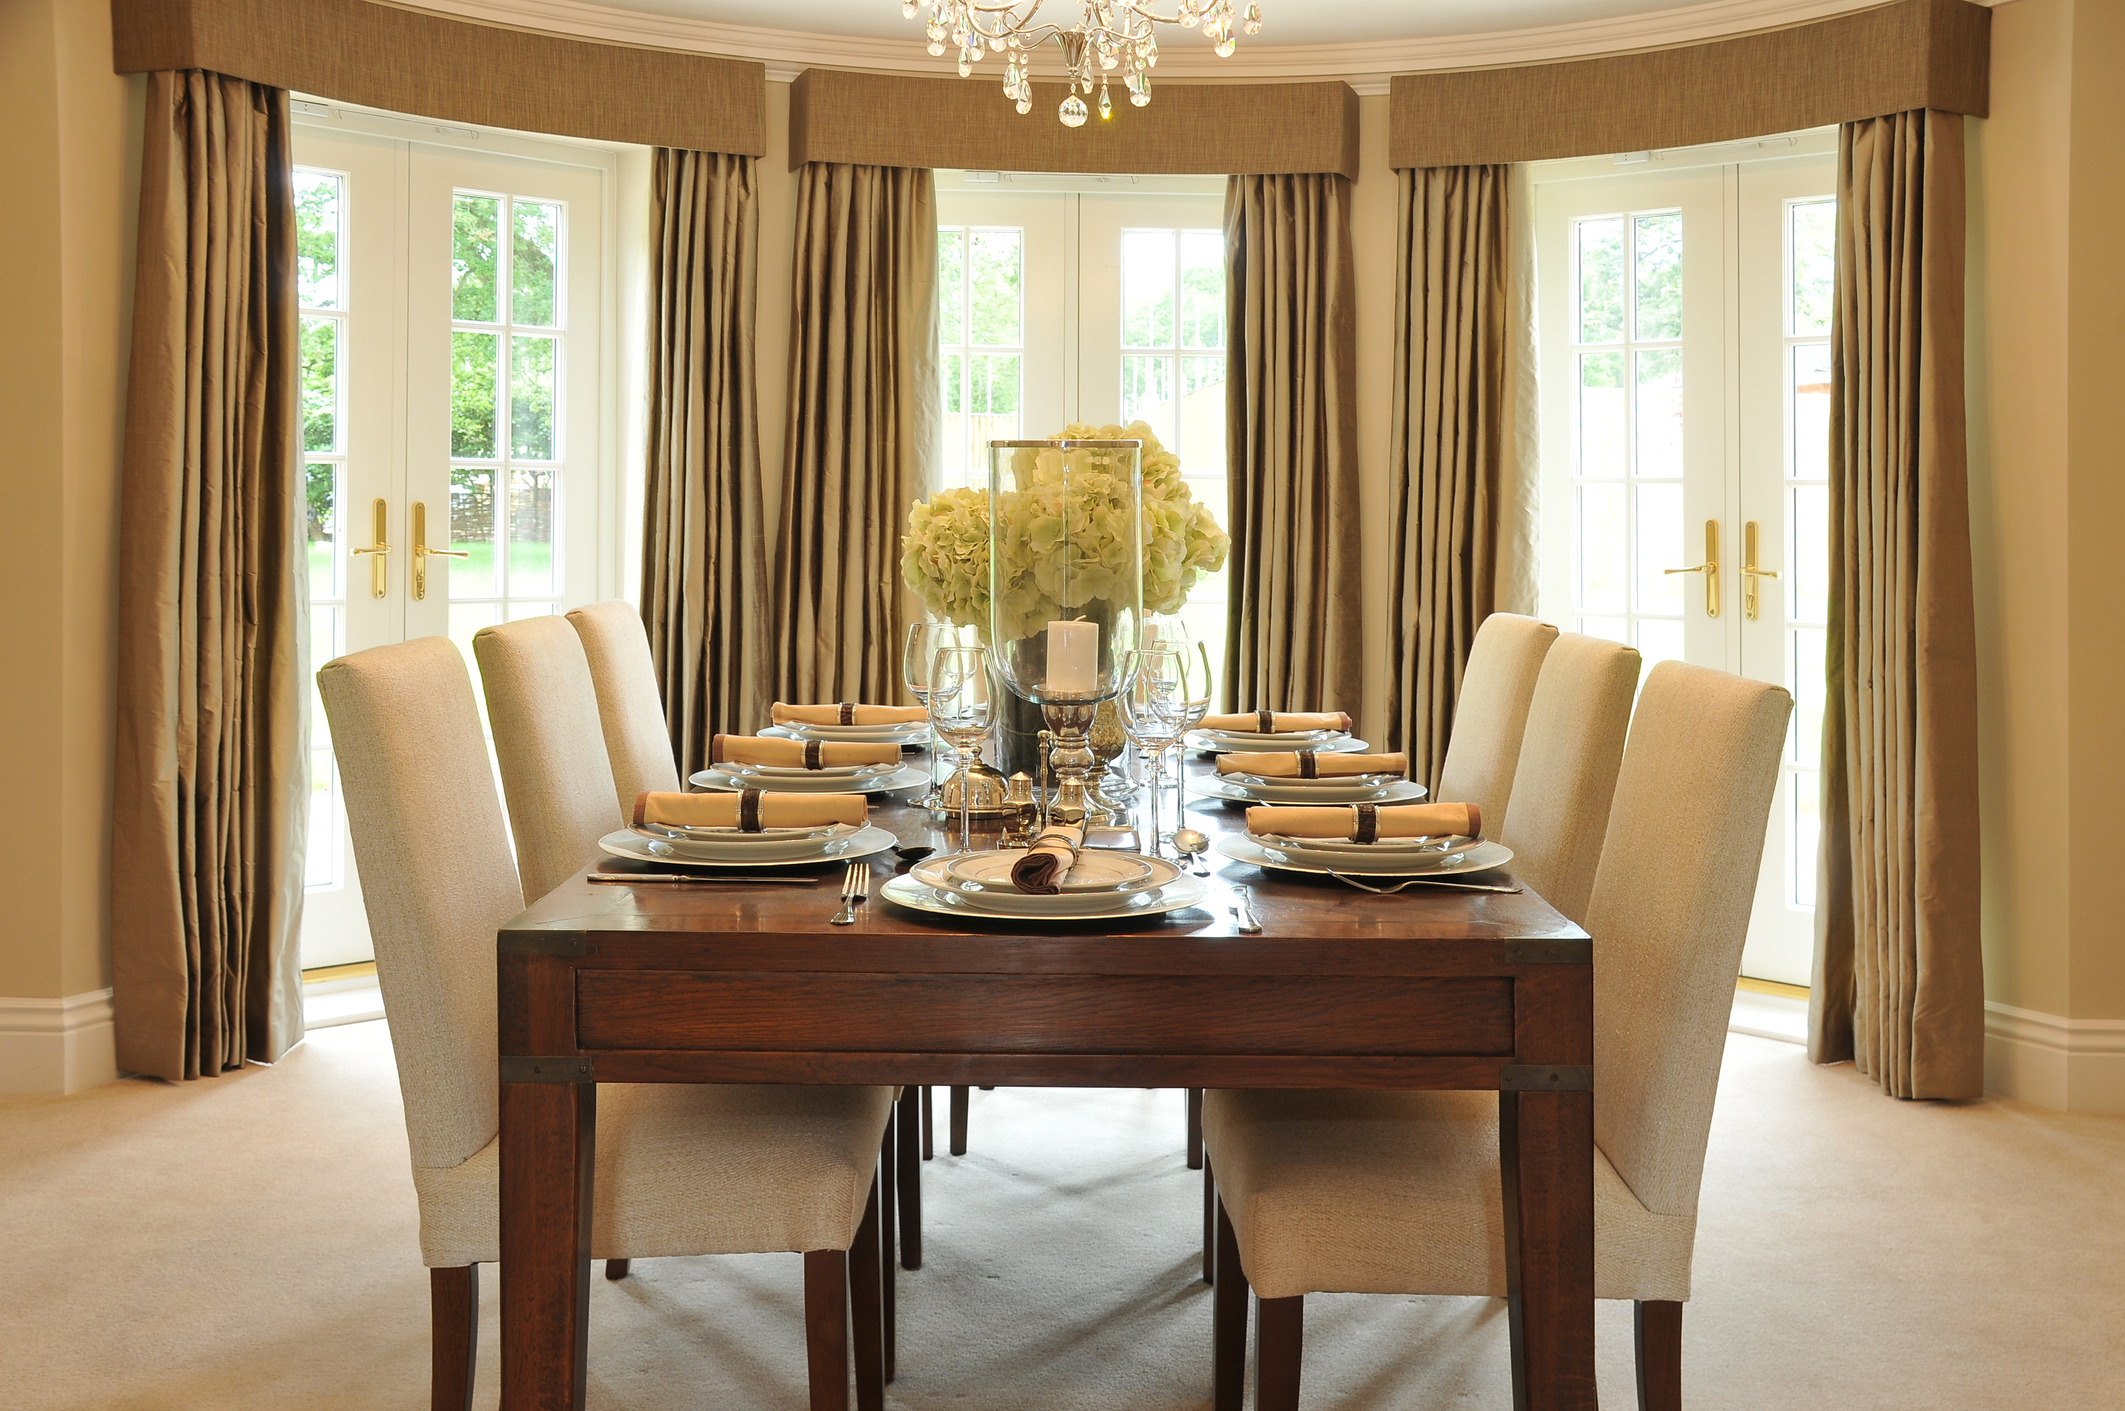 Buy Custom Drapes for a Bold and Beautiful Look in Any Room